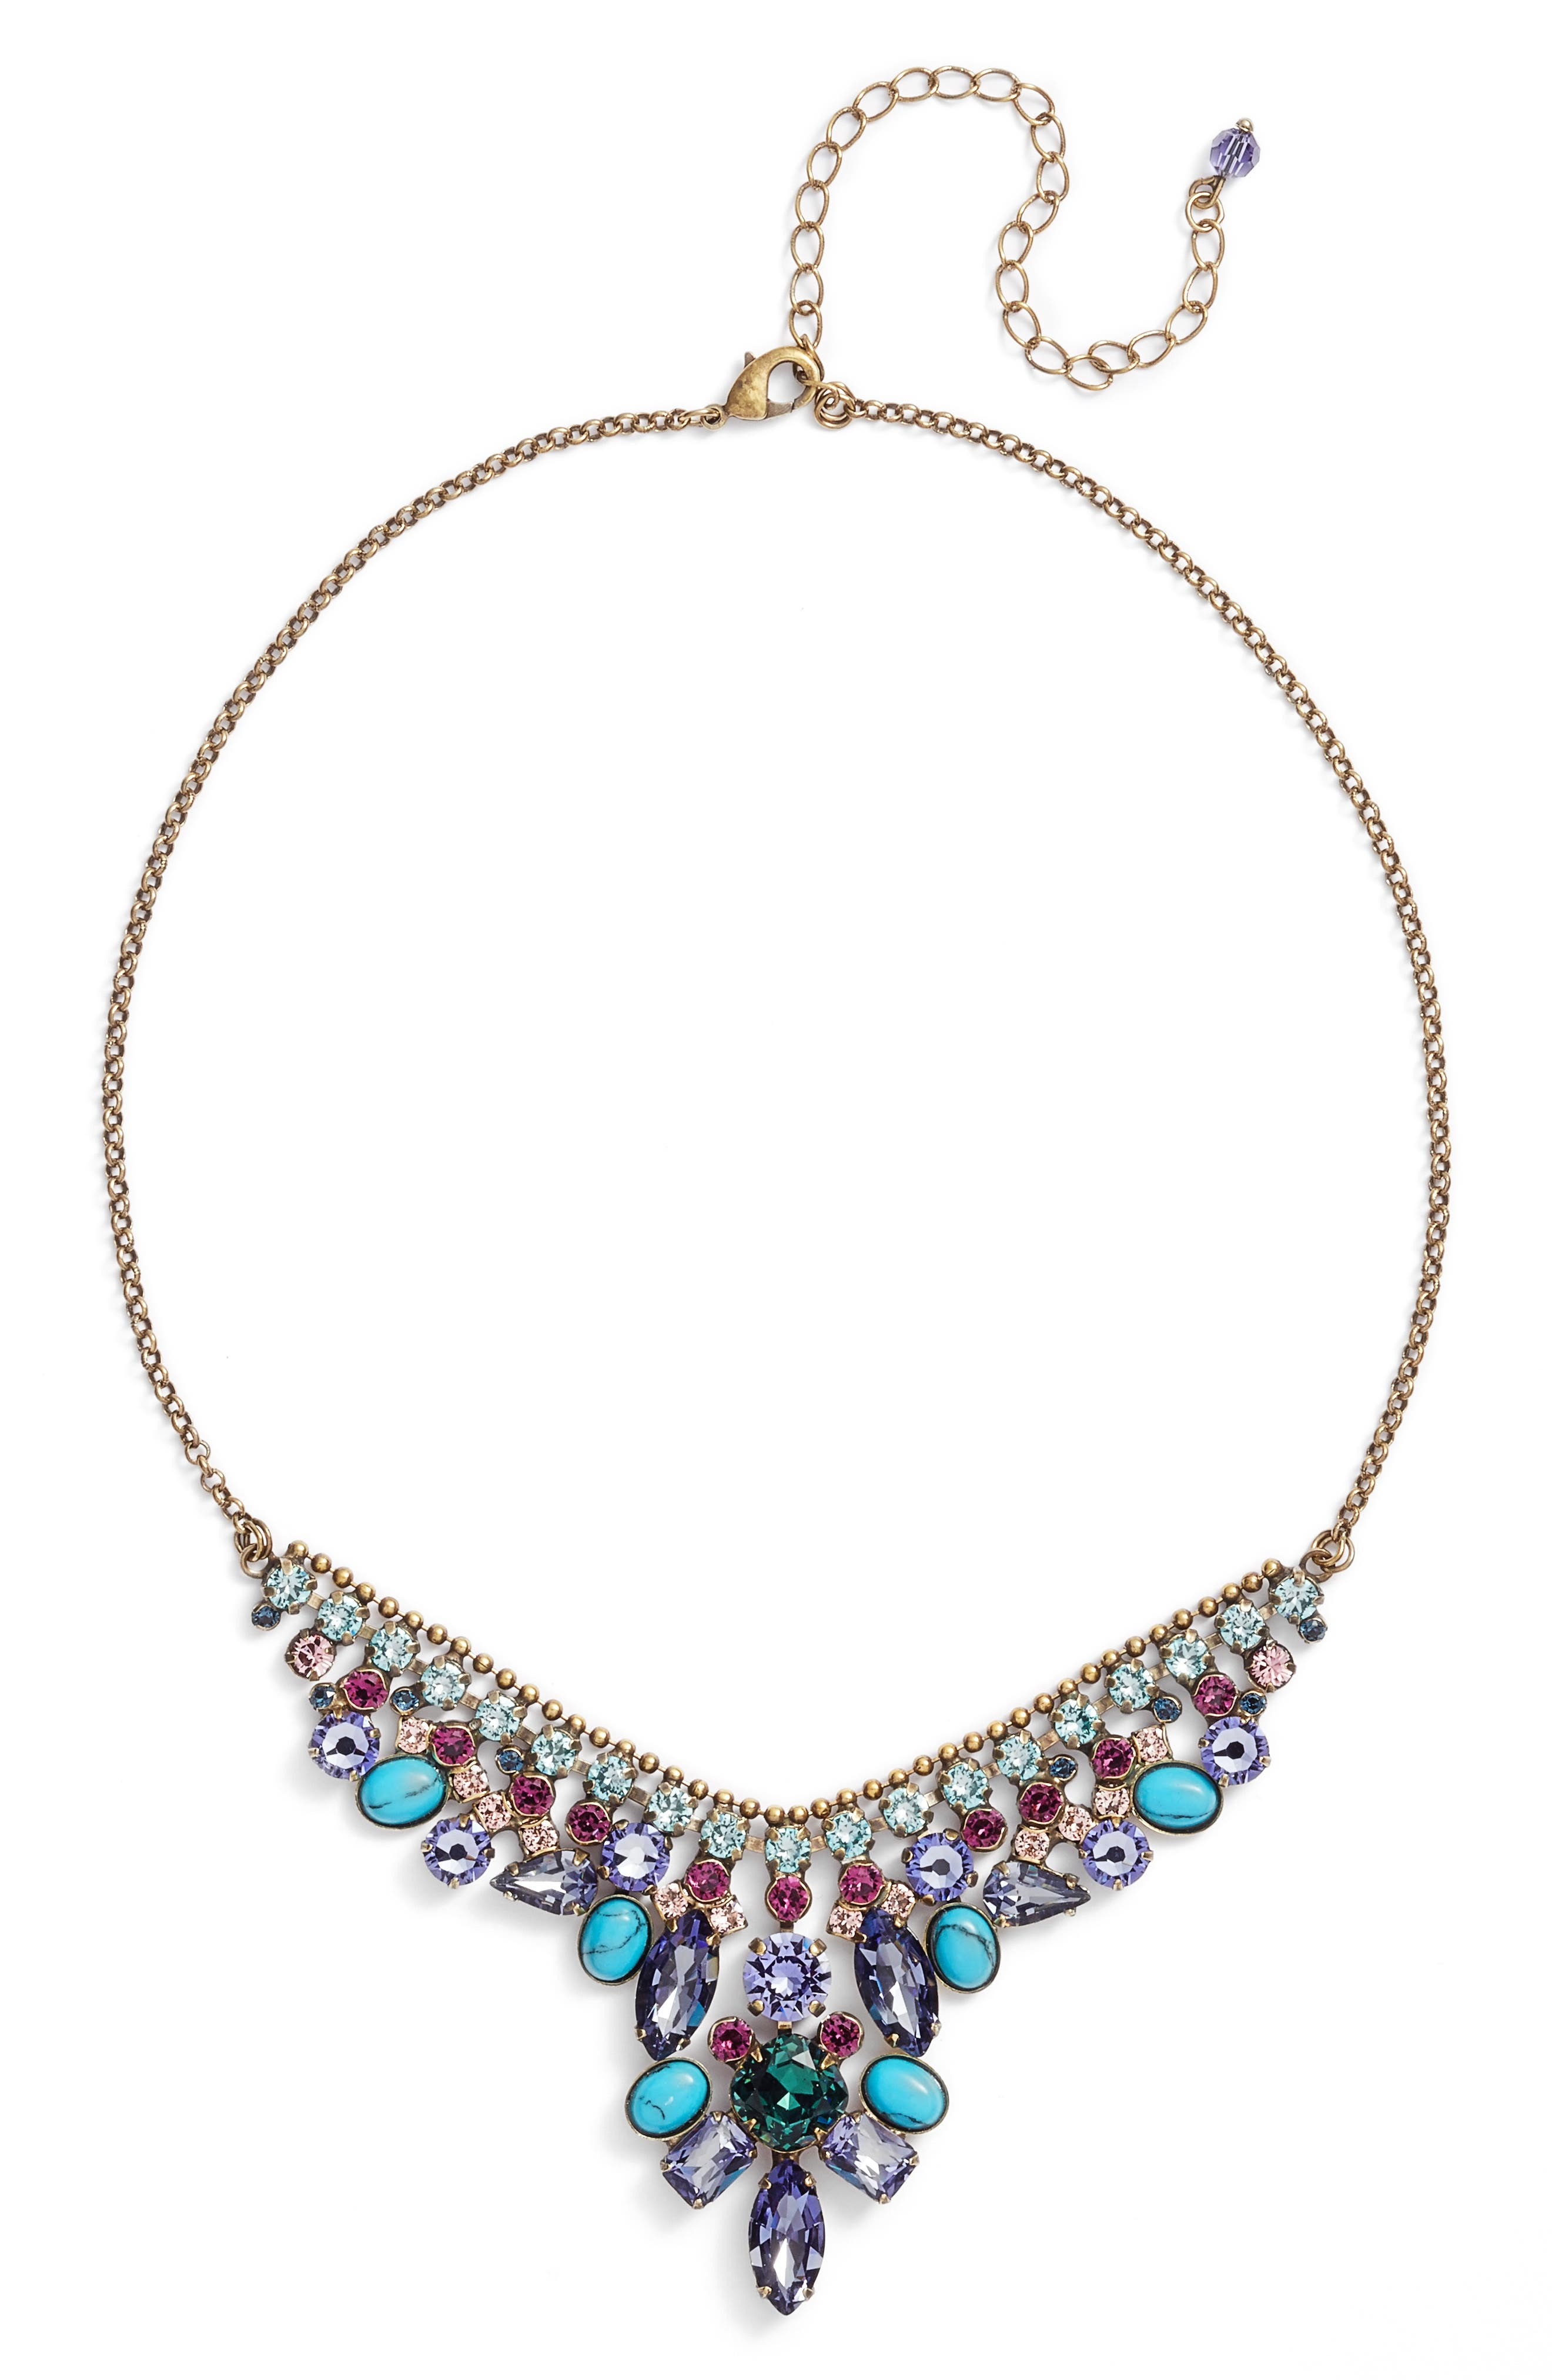 Main Image - Sorrelli Vervain Frontal Necklace